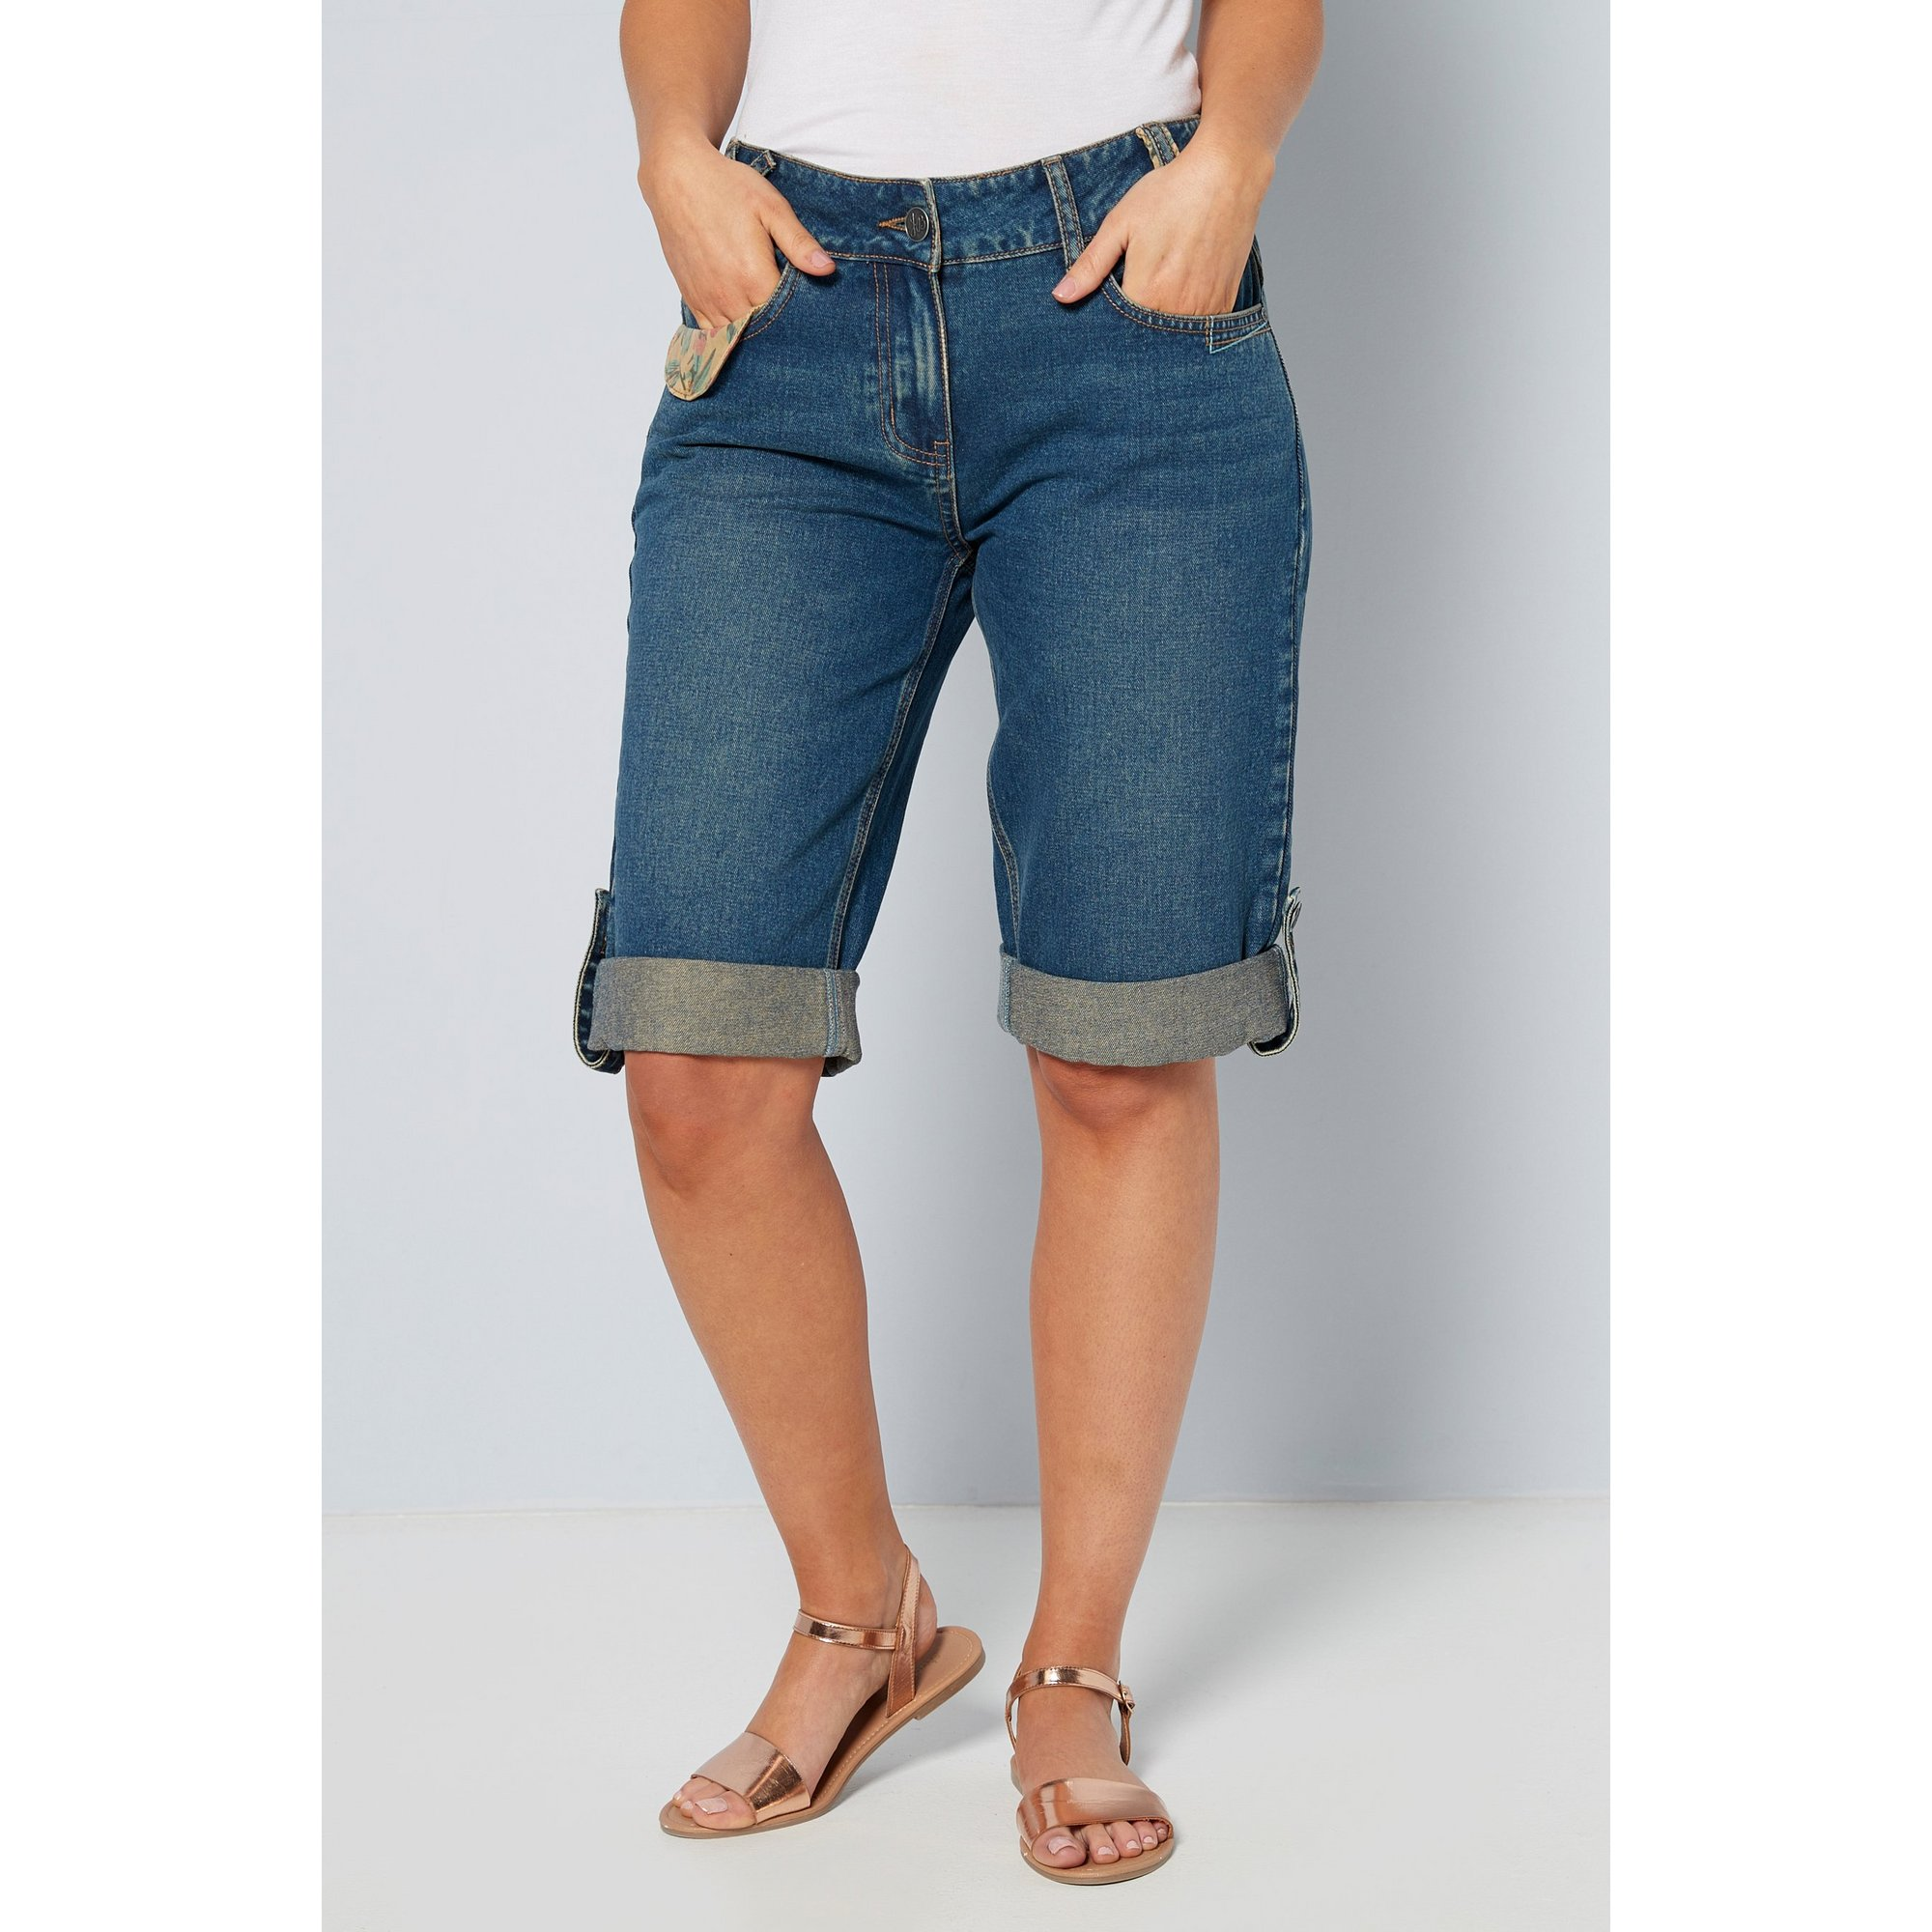 Image of Joe Browns Beautiful Belted Denim Shorts